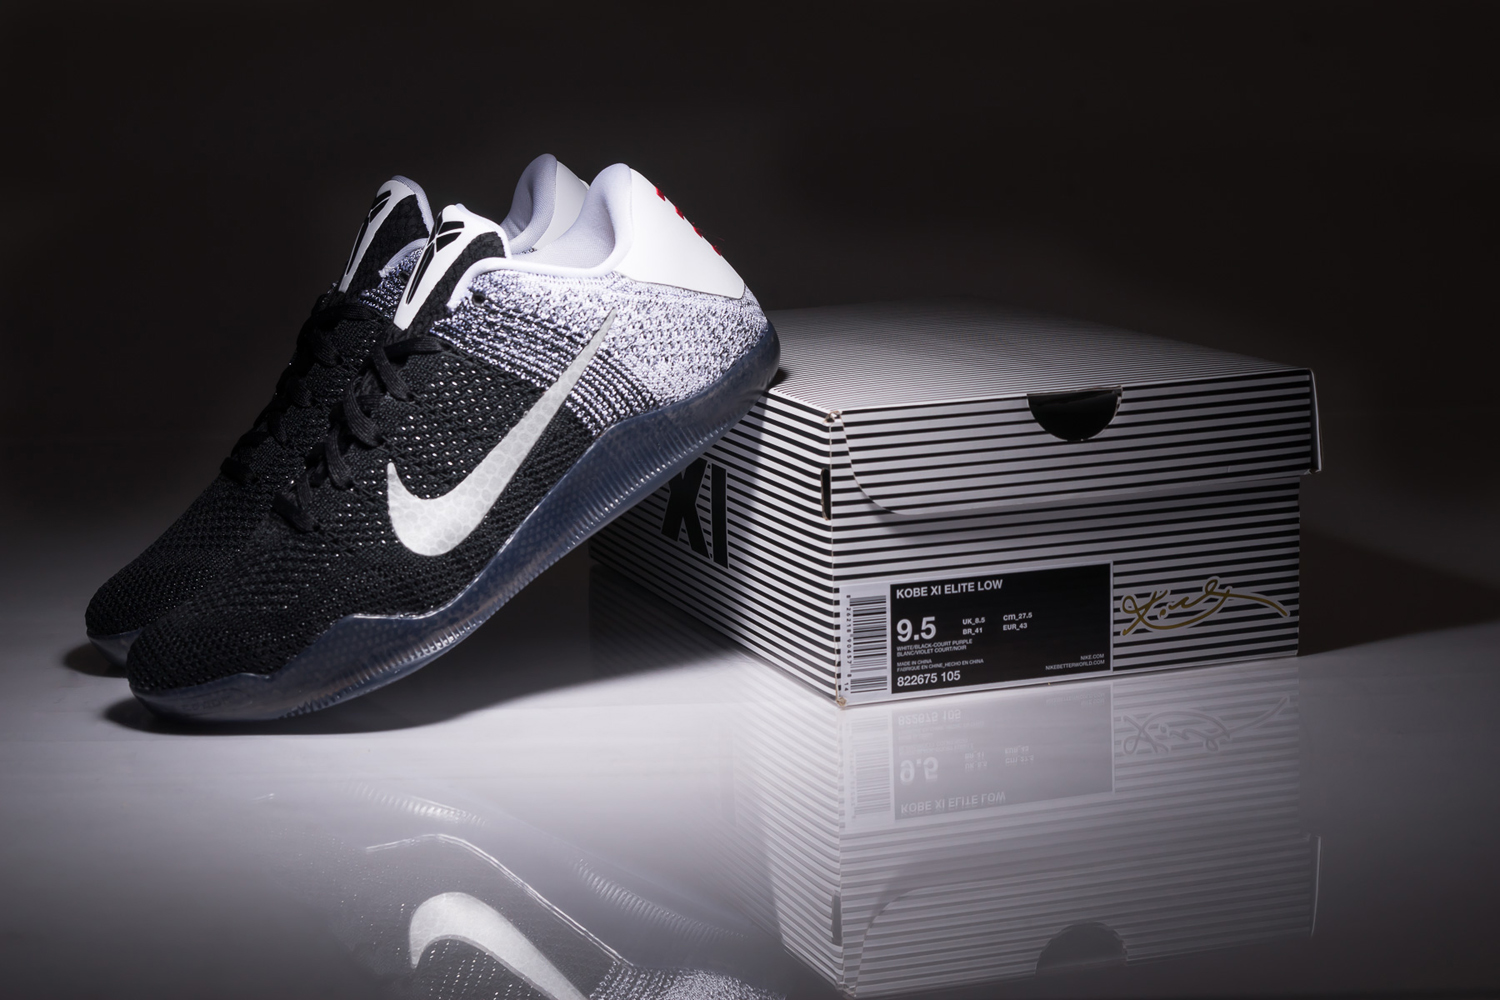 reputable site 58aa5 0be6d Nike Kobe 11 Elite Low Release Date  01 30 16. Color  White Black-Court  Purple Style    822675-105. Price   200